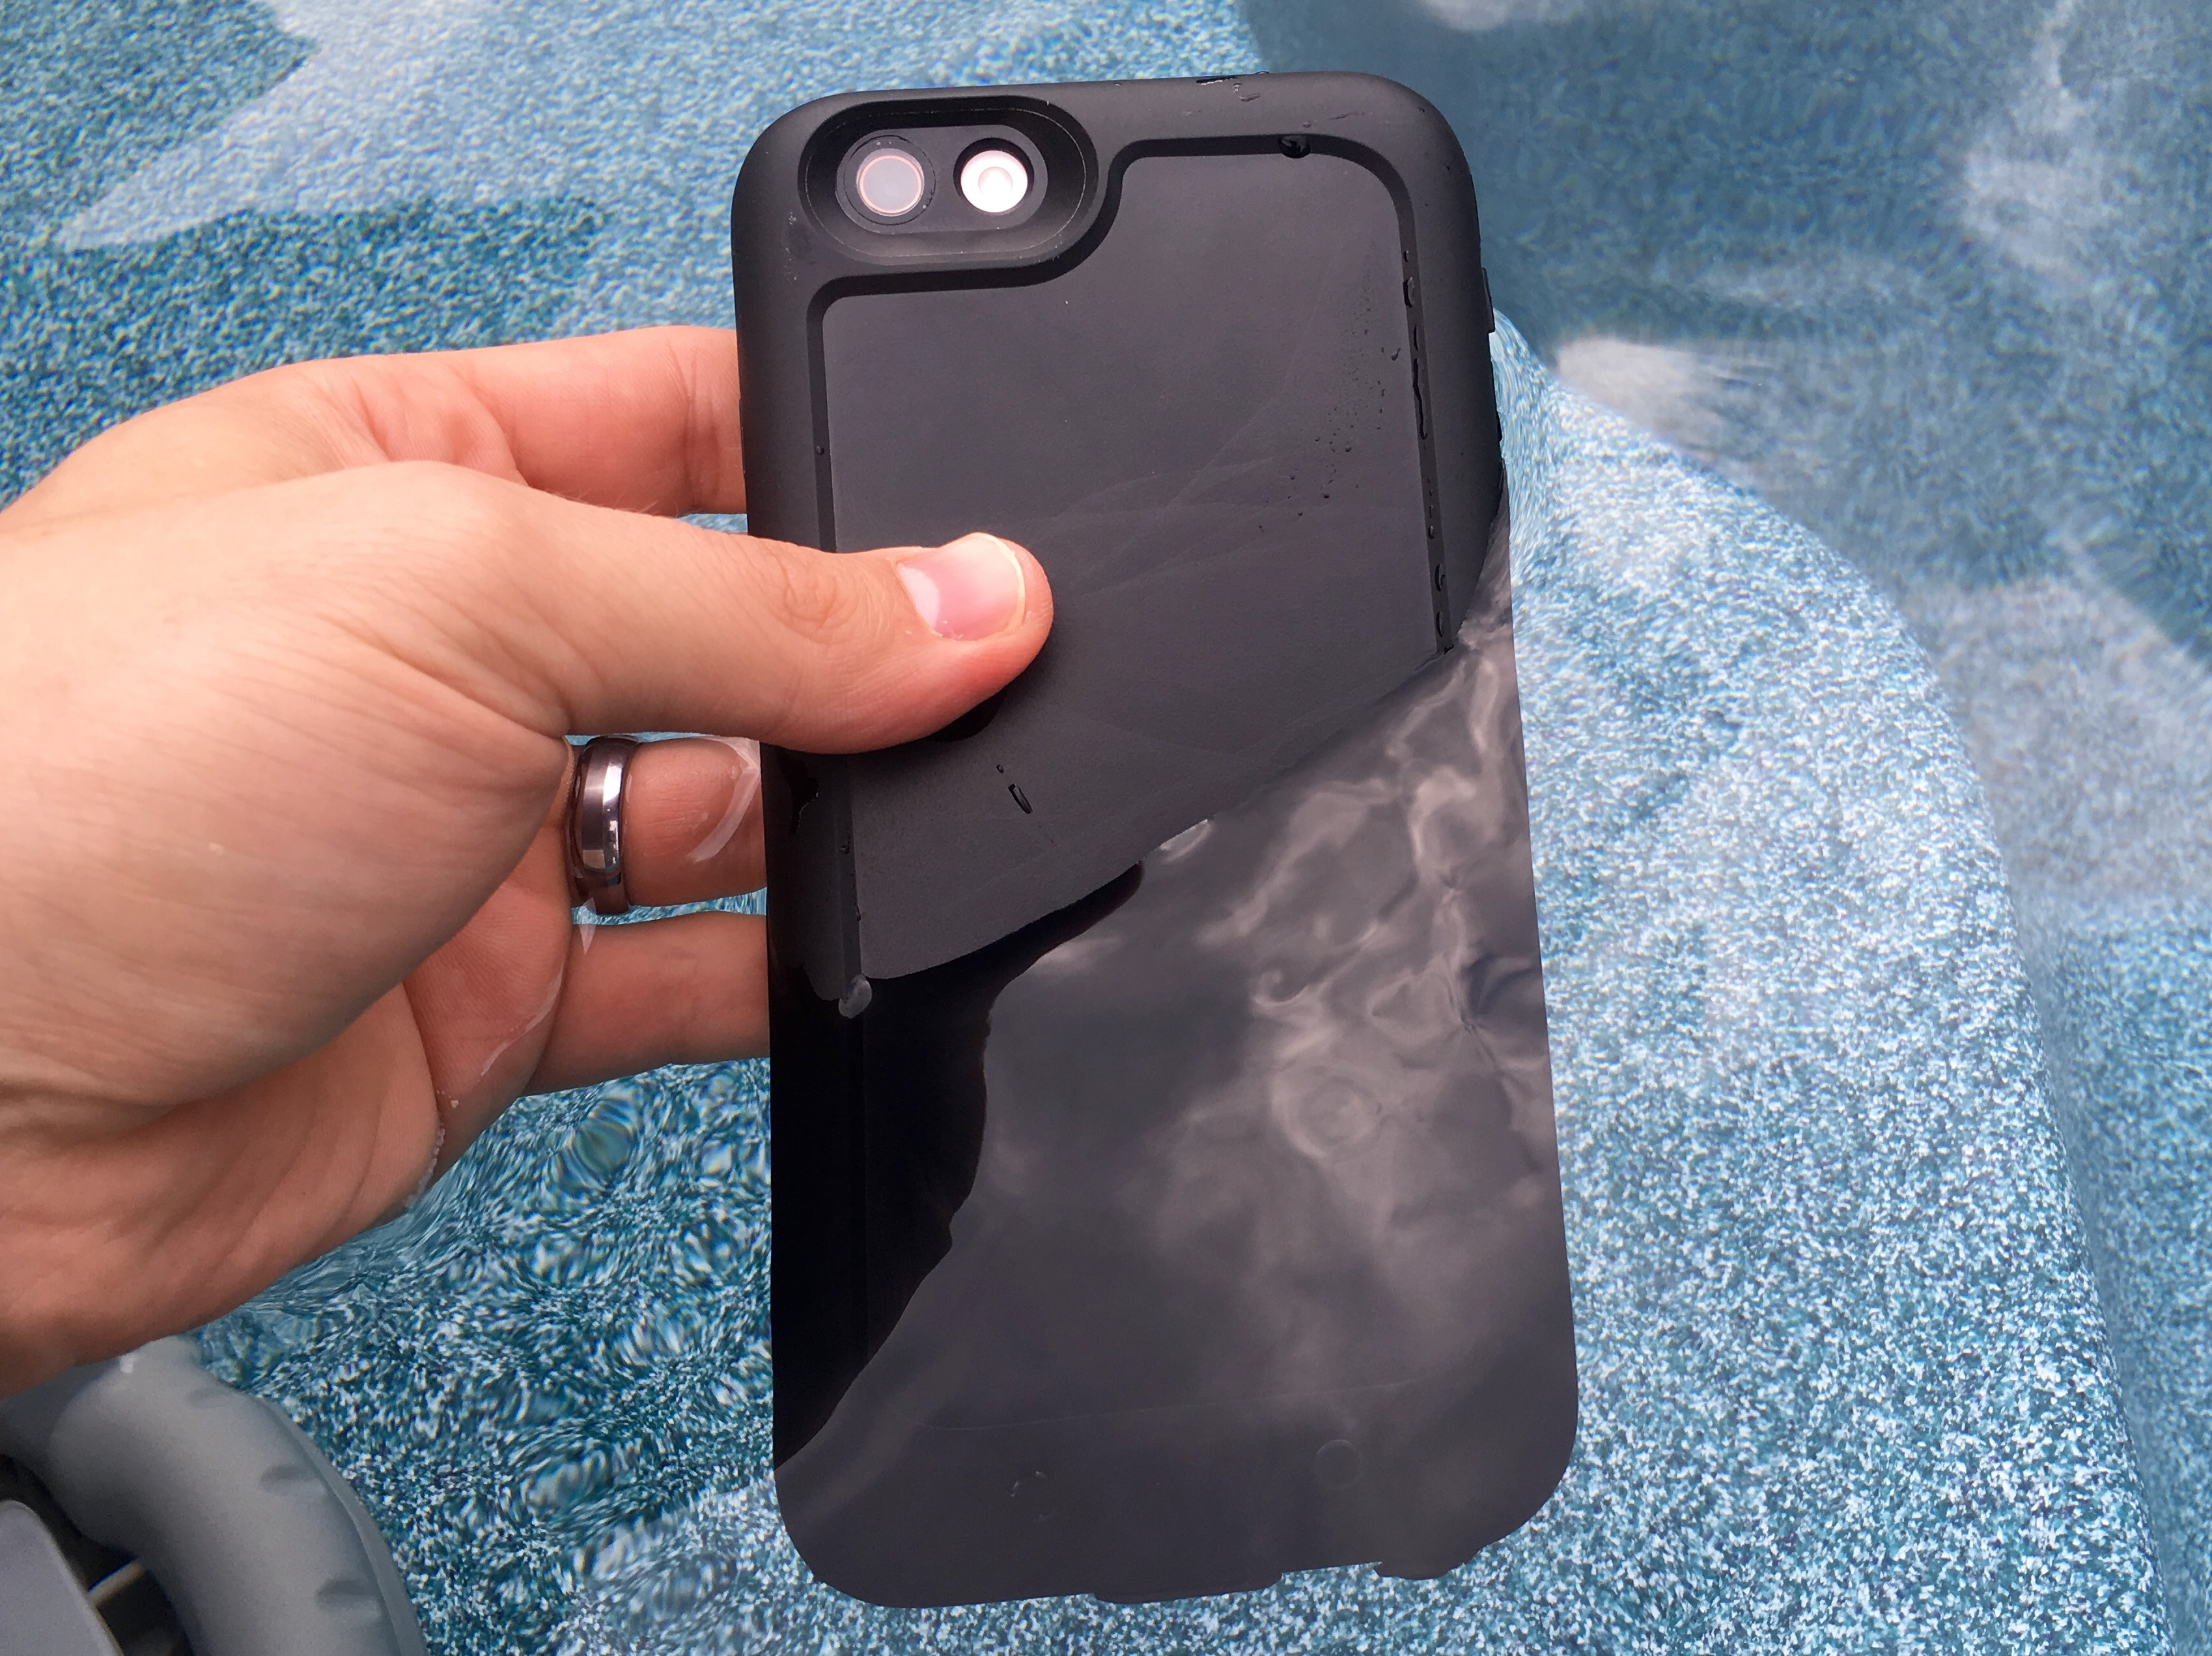 This is the Mophie Juice Pack H2Pro, a waterproof iPhone 6s Plus battery case.